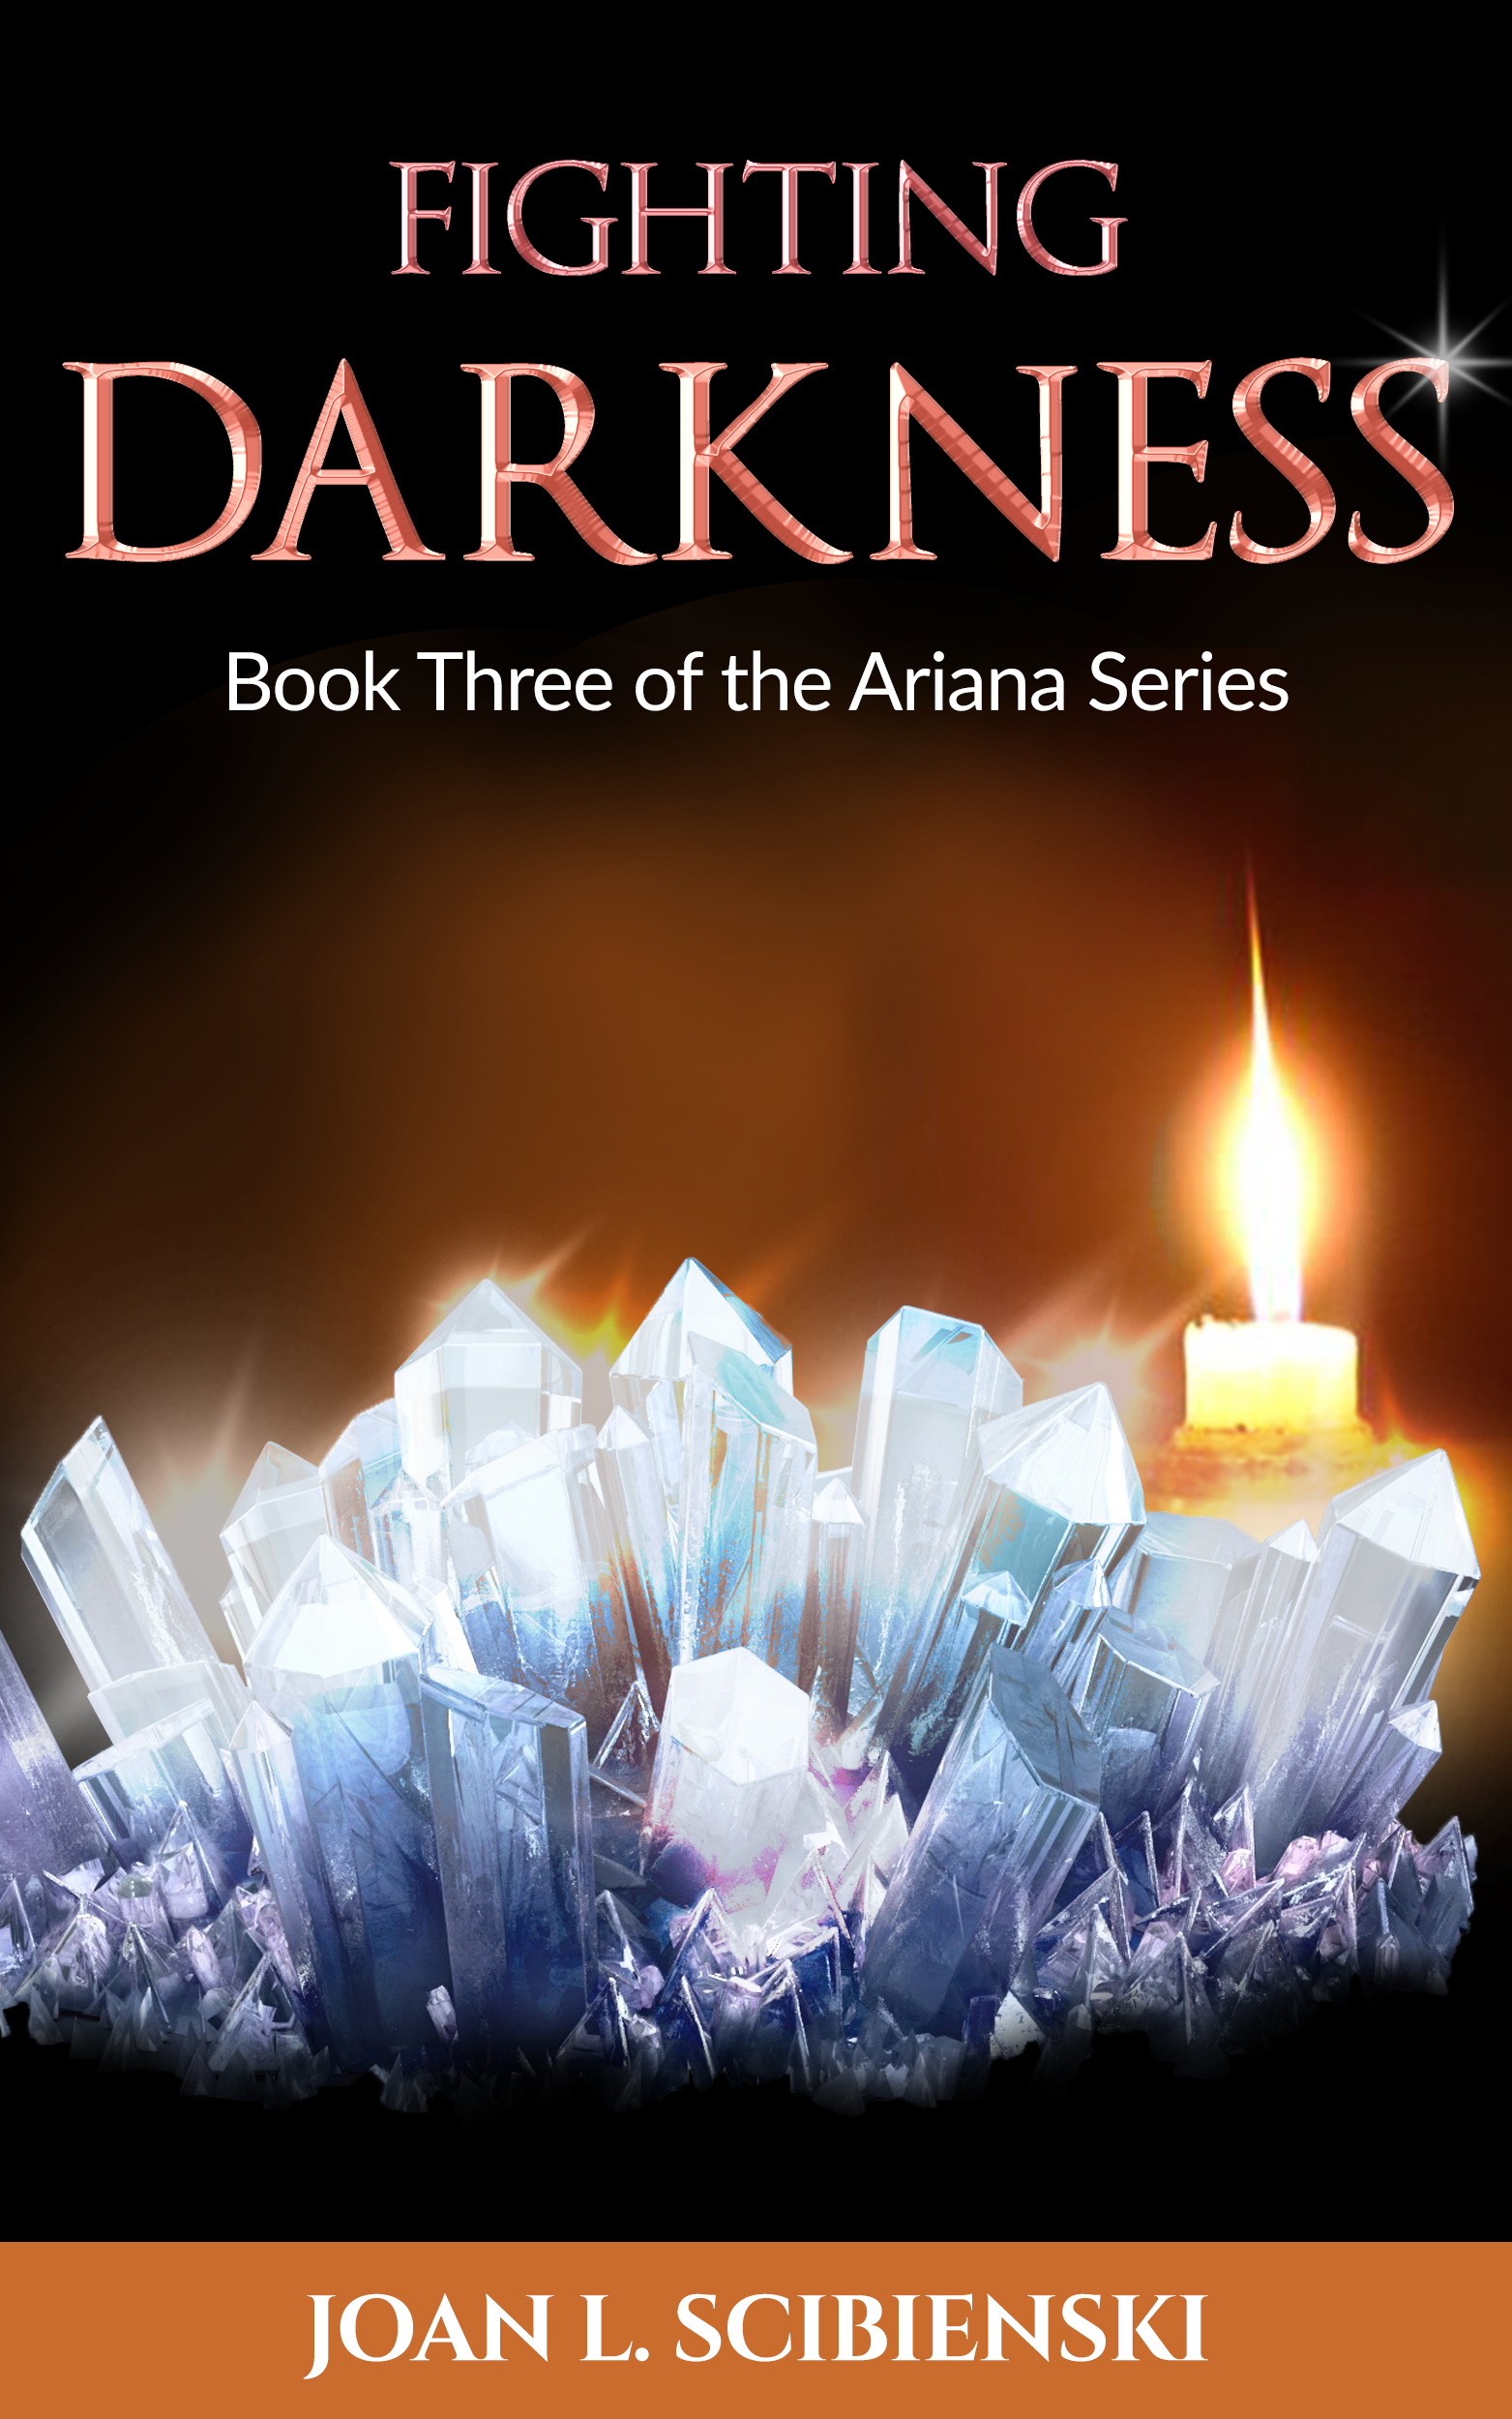 Fighting Darkness, Book 3 of The Ariana Series  by  Joan L. Scibienski